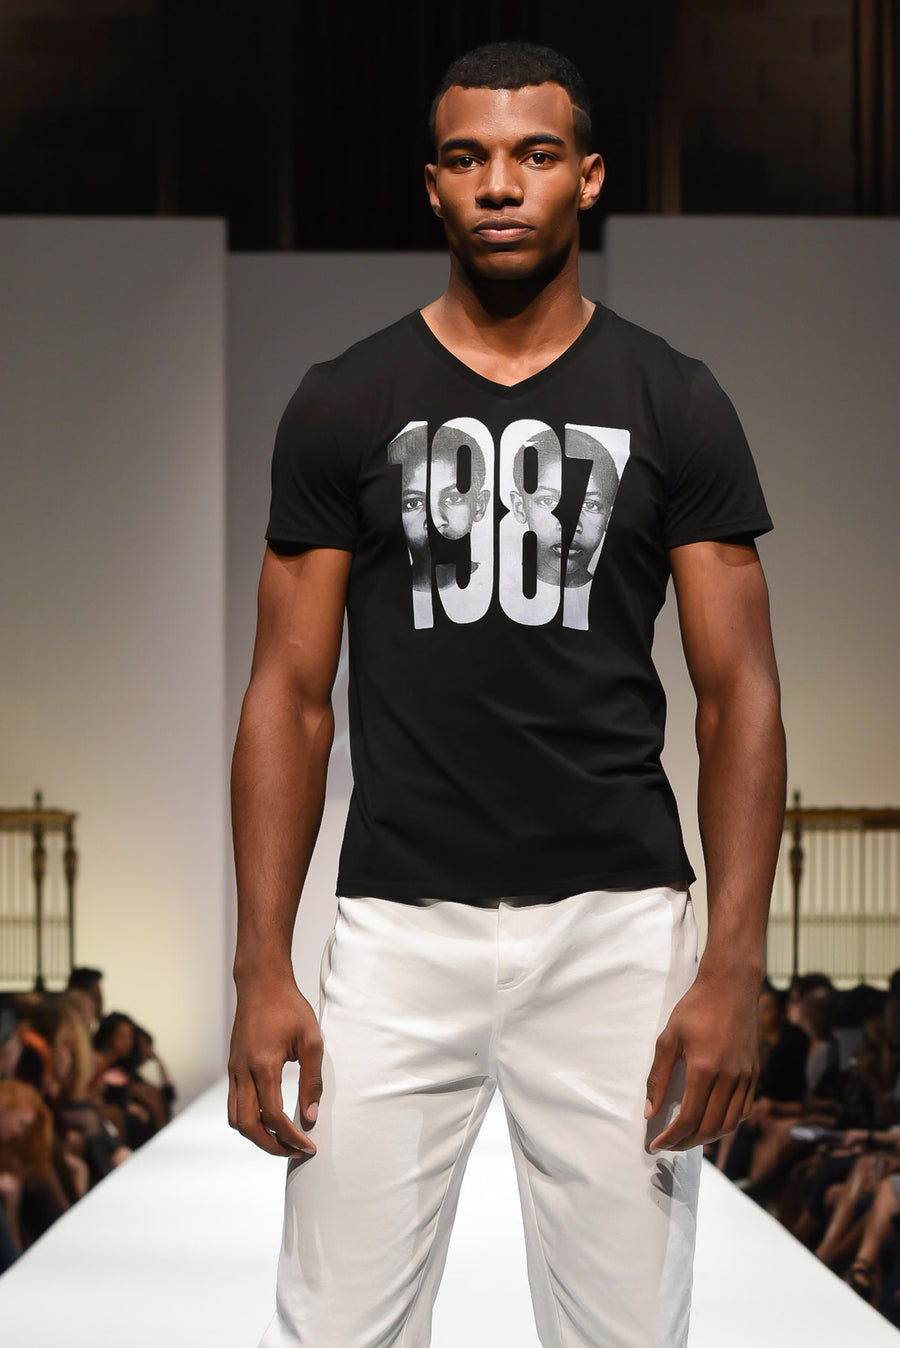 1987 Men's T-shirt - Modern Choices